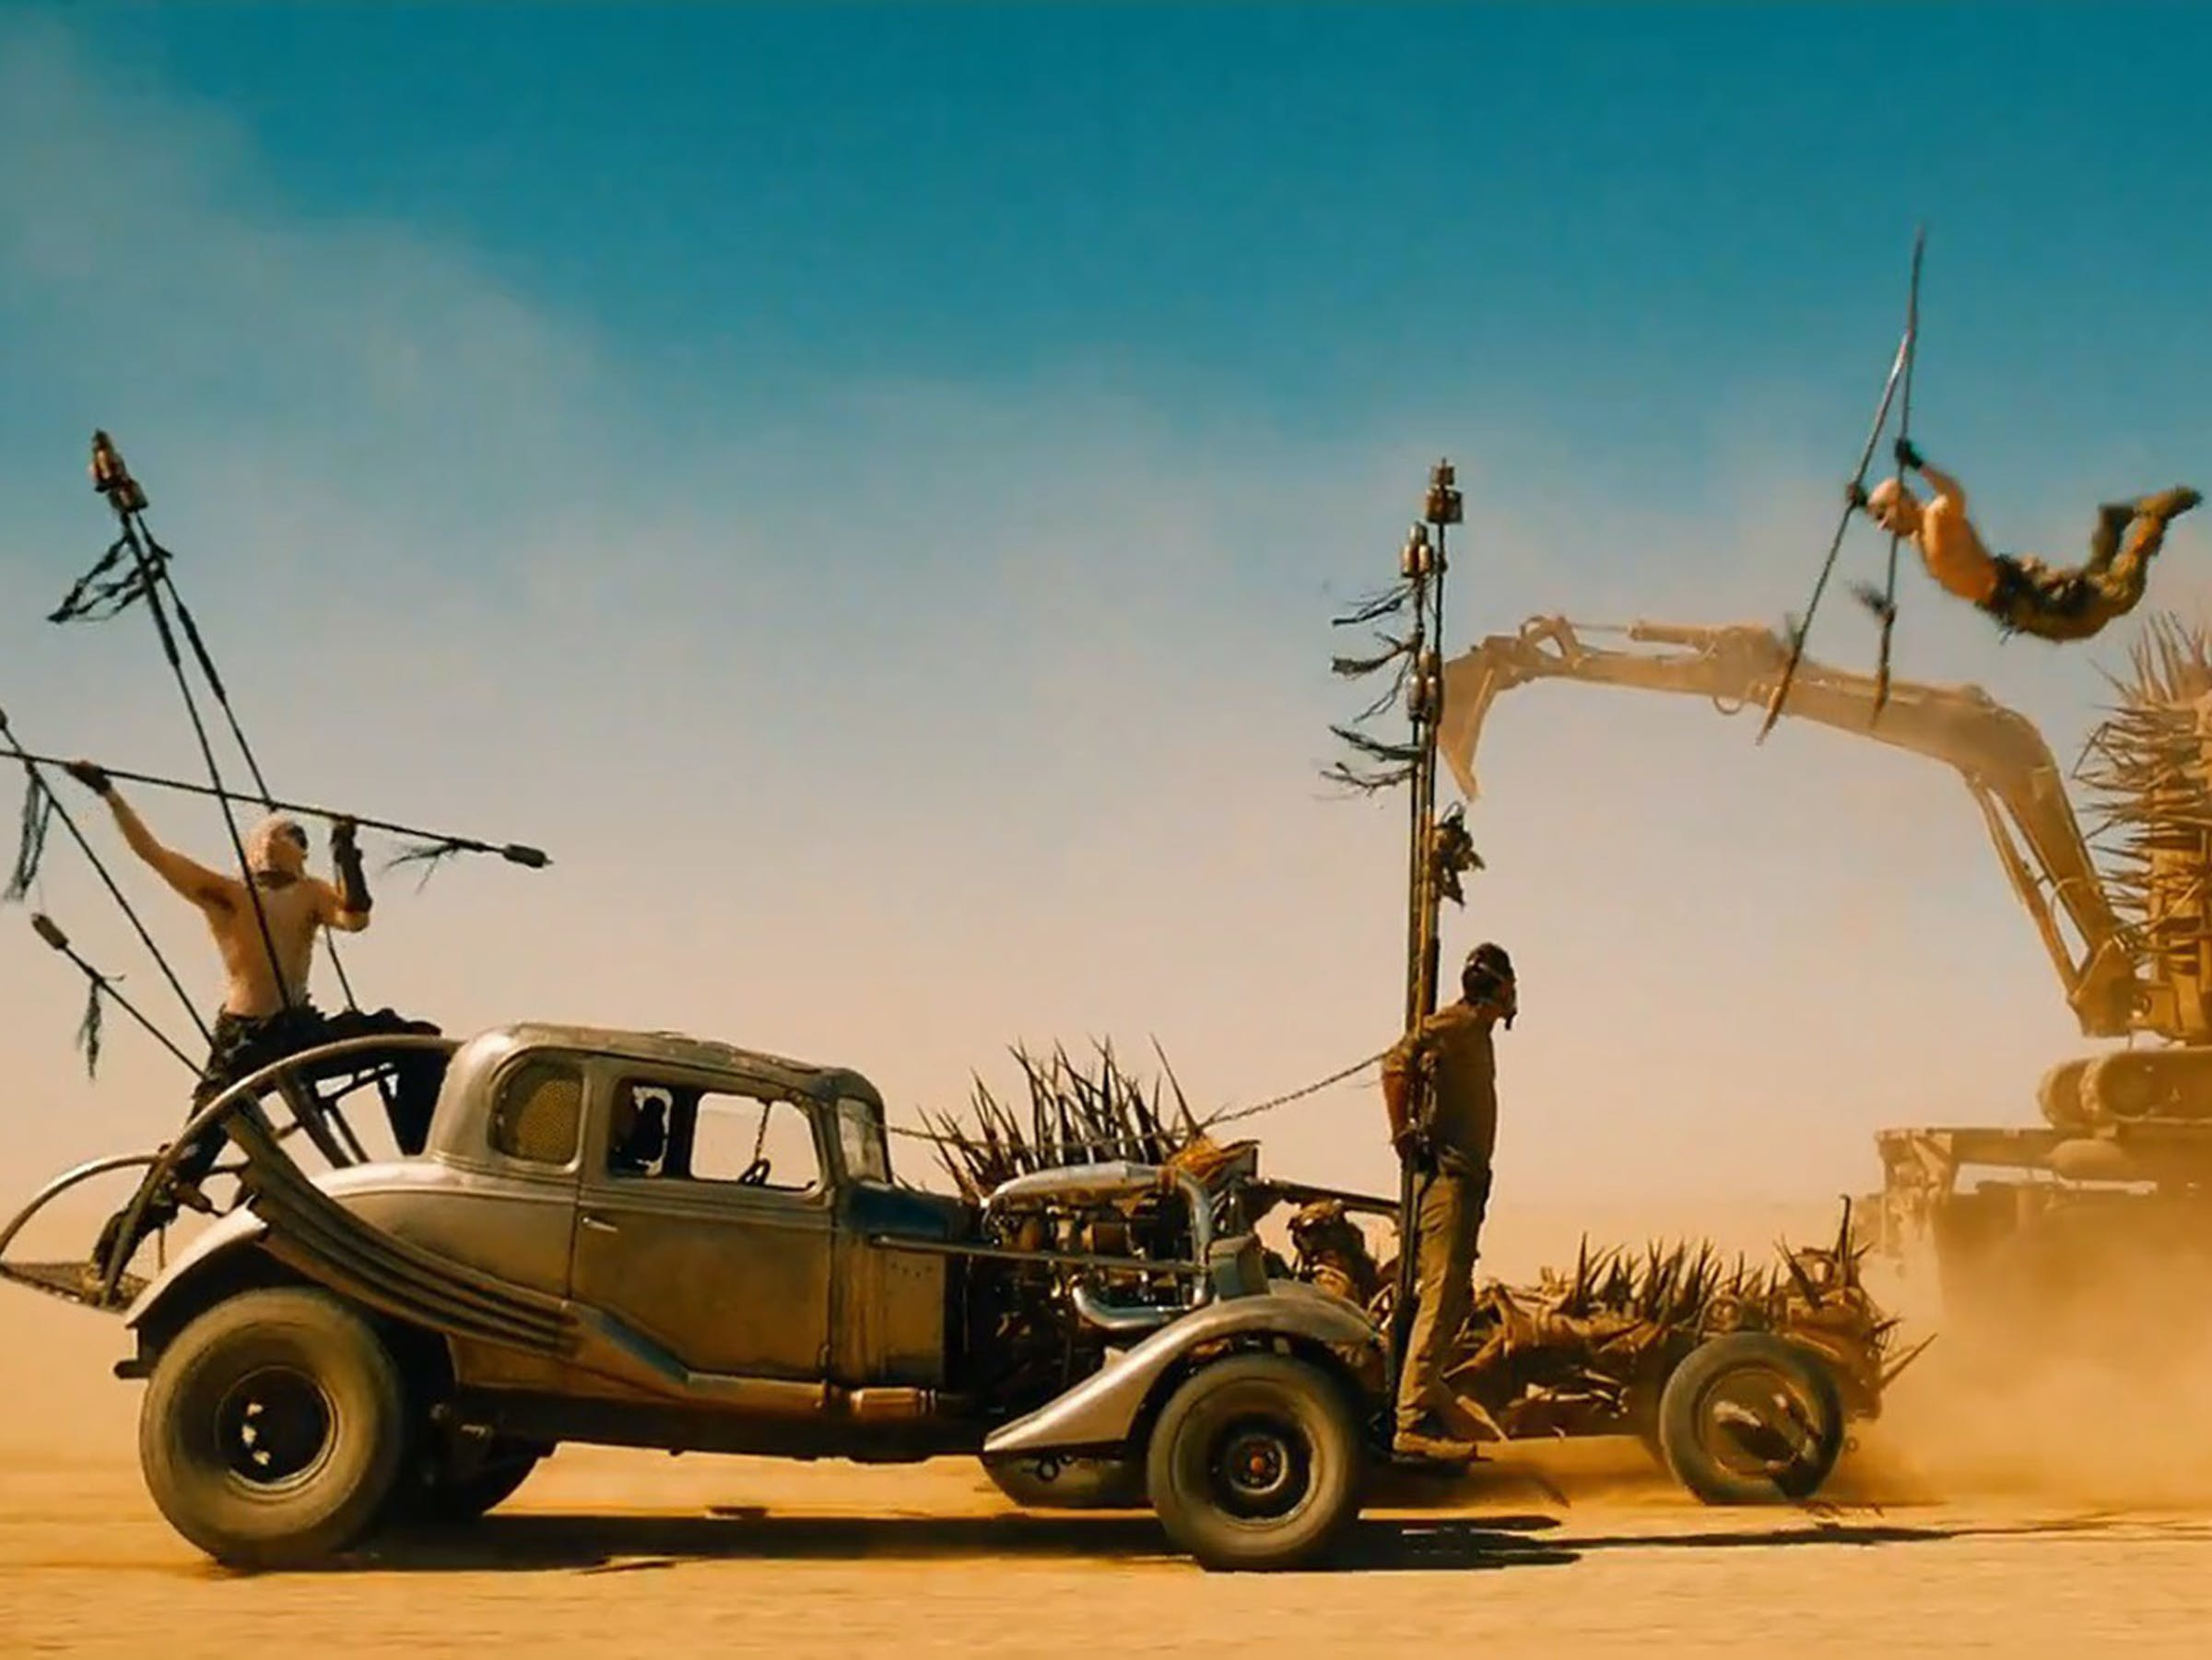 Behind the Scenes from Mad Max Fury Road